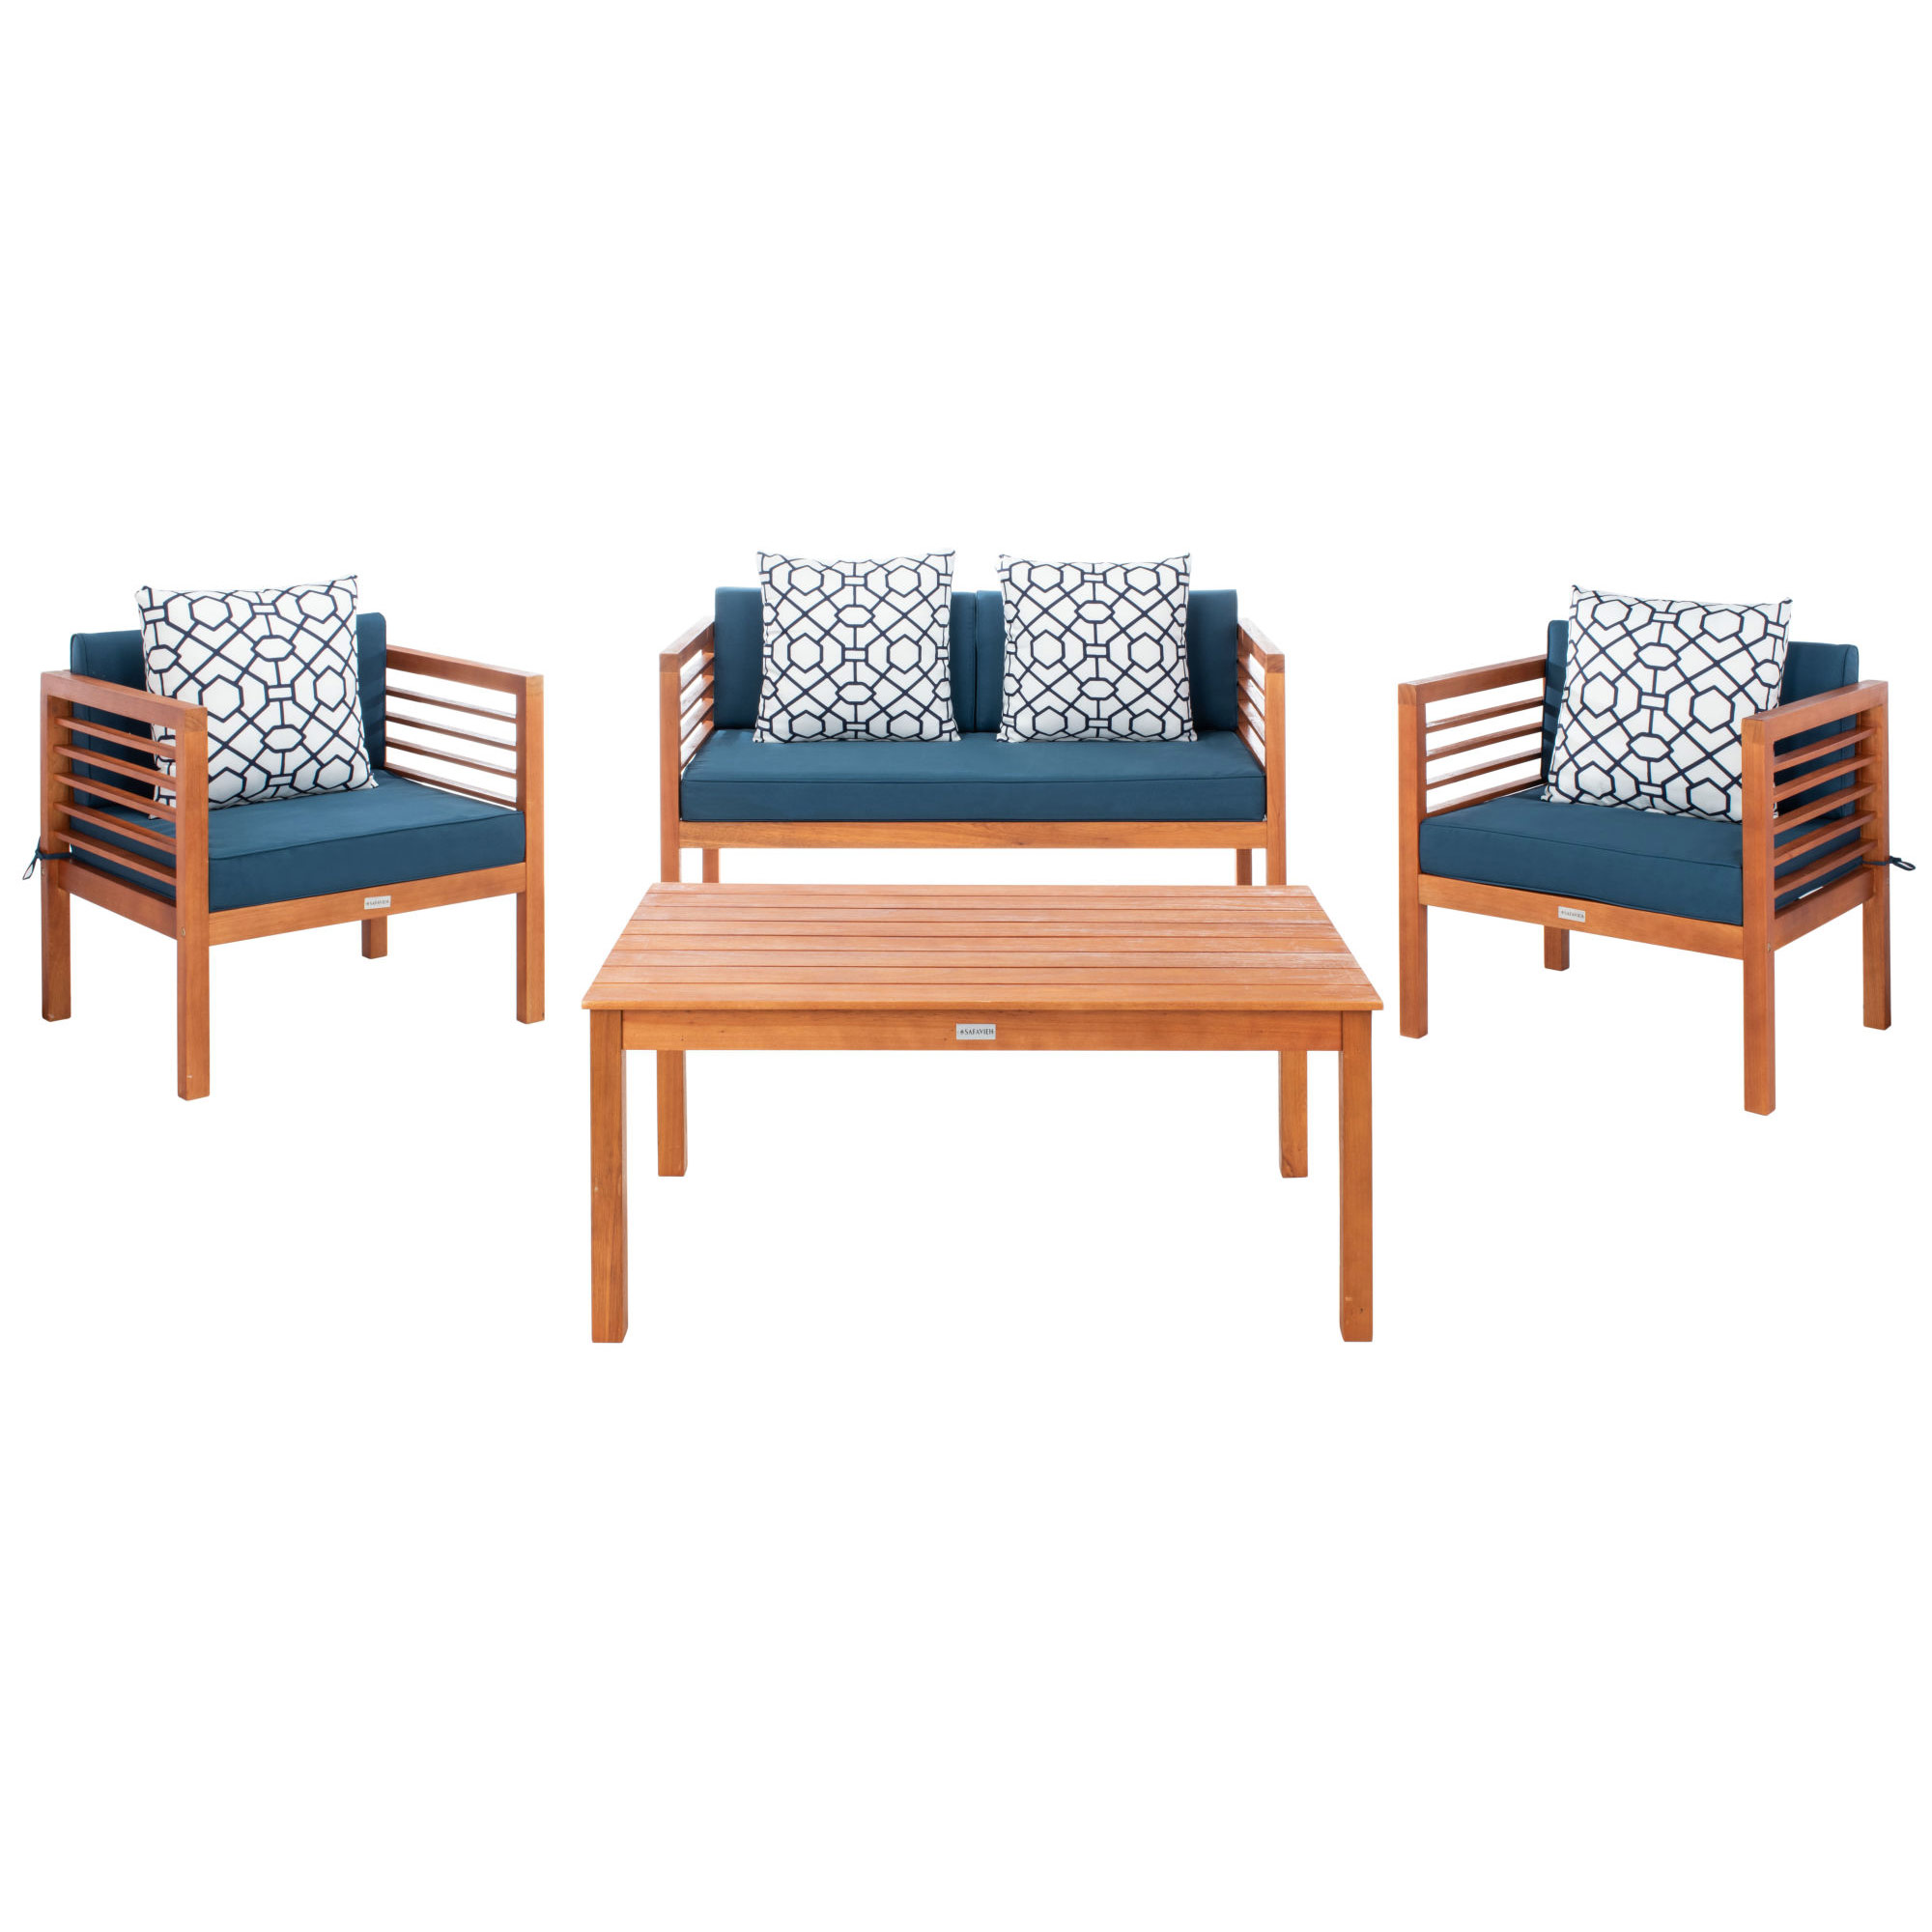 Alda 4 Pc Outdoor Set With Accent Pillows on Safavieh Alda 4Pc Outdoor Set id=51622